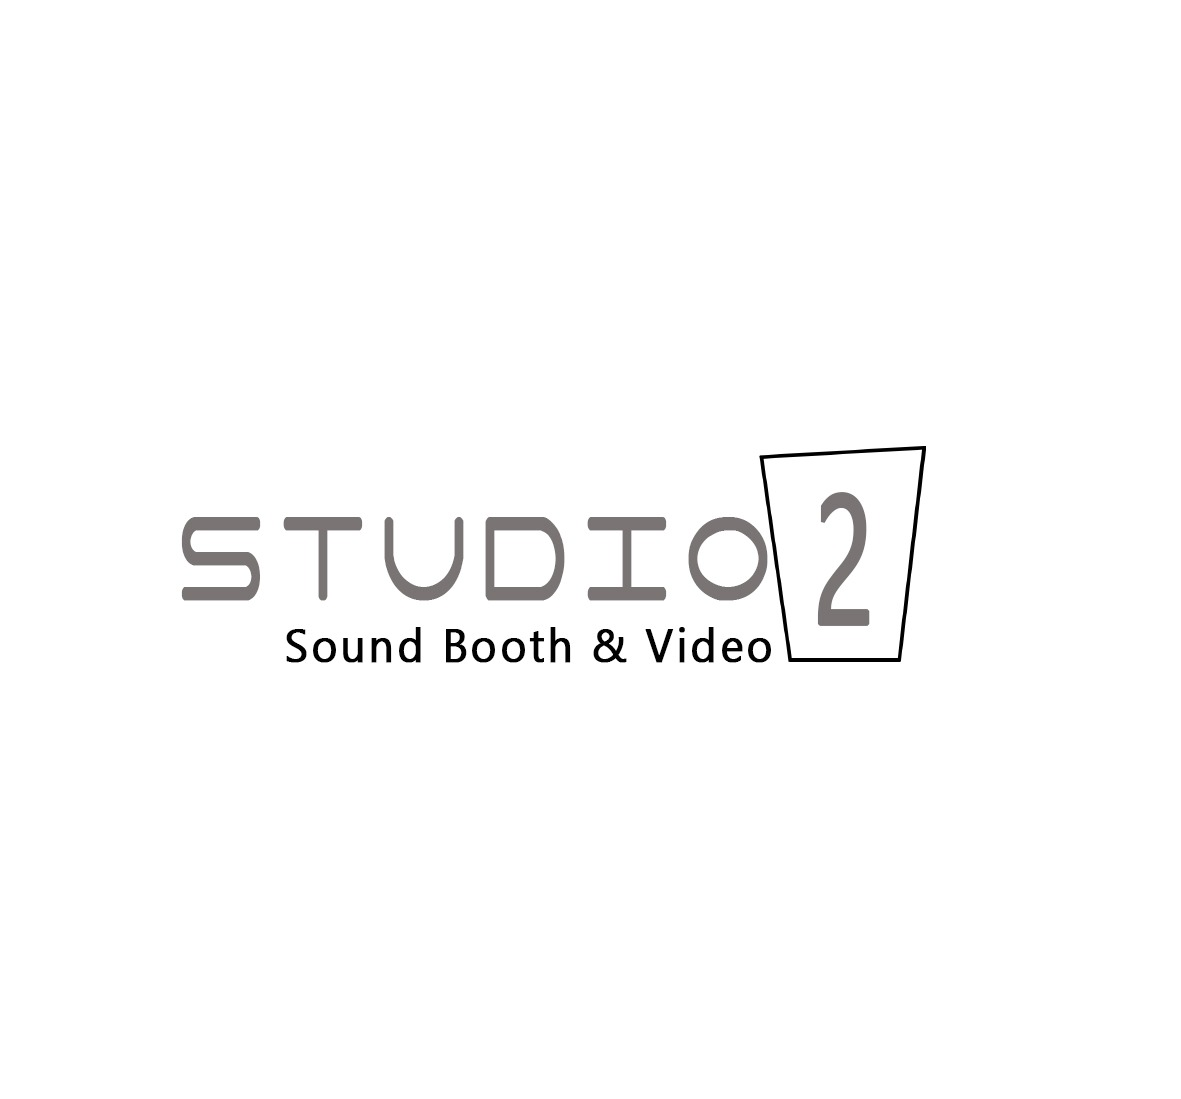 Studio%202%20name_edited